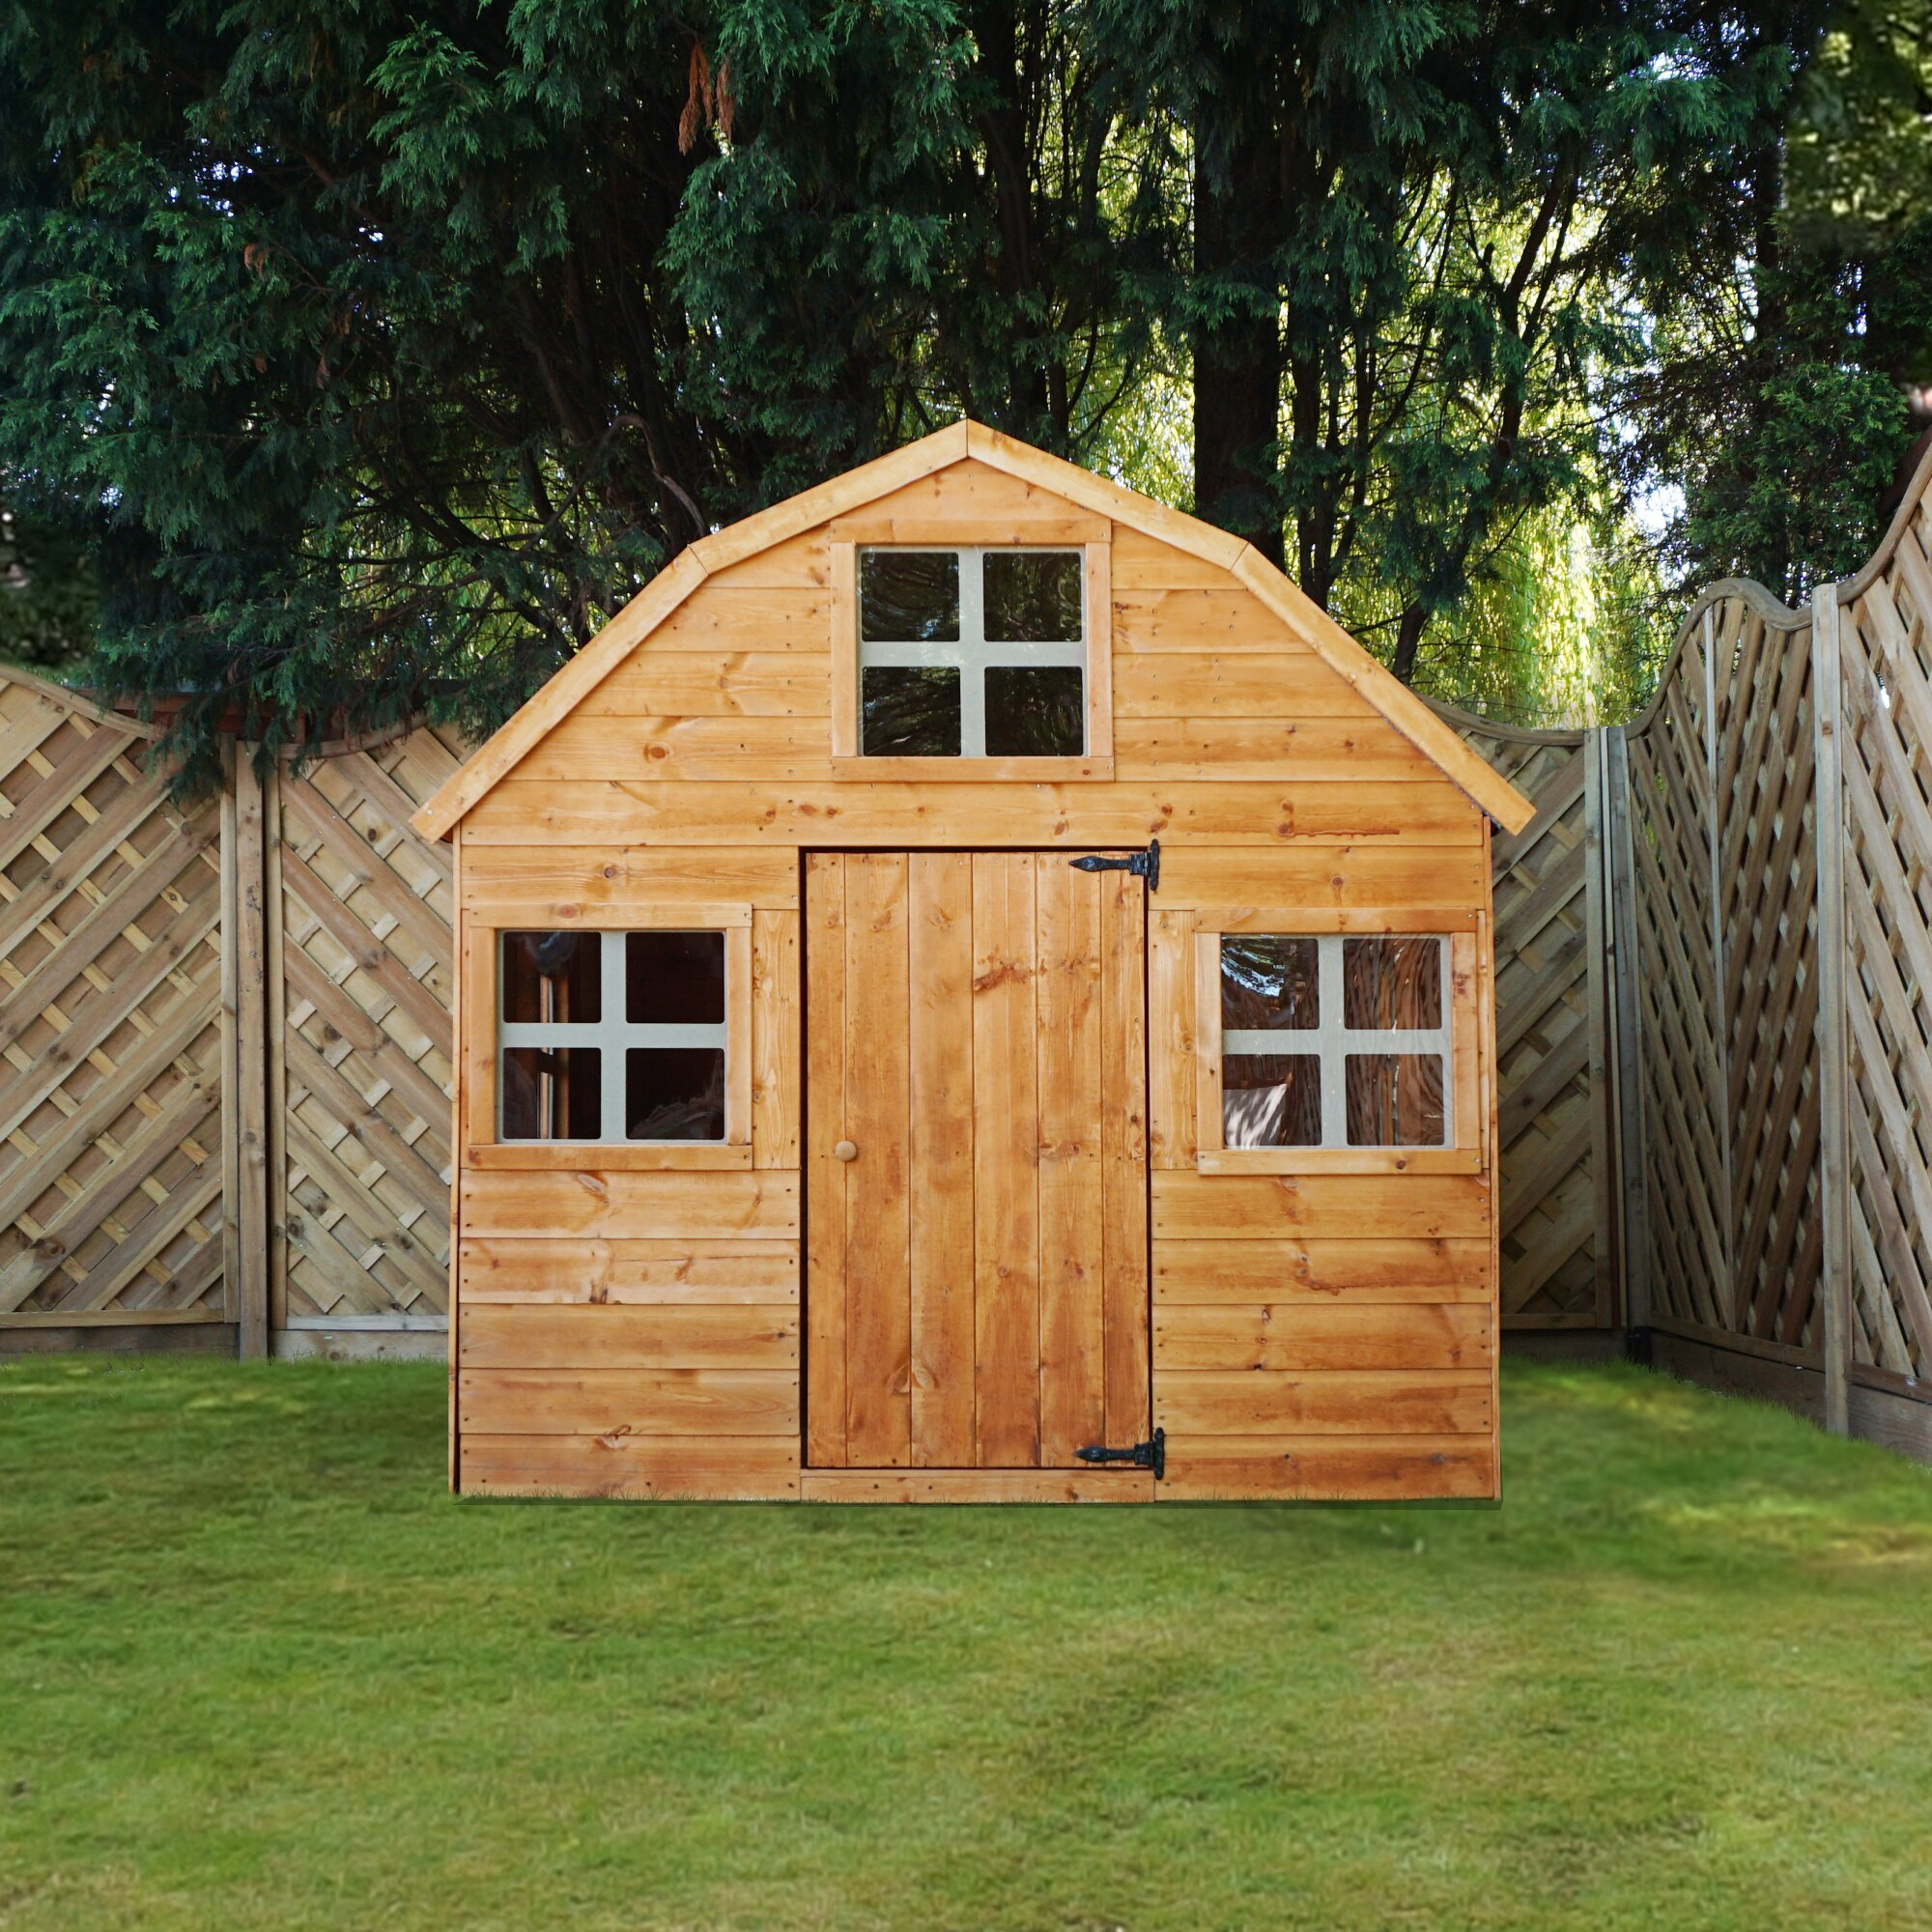 Mercia garden products dutch style playhouse reviews for Dutch playhouse